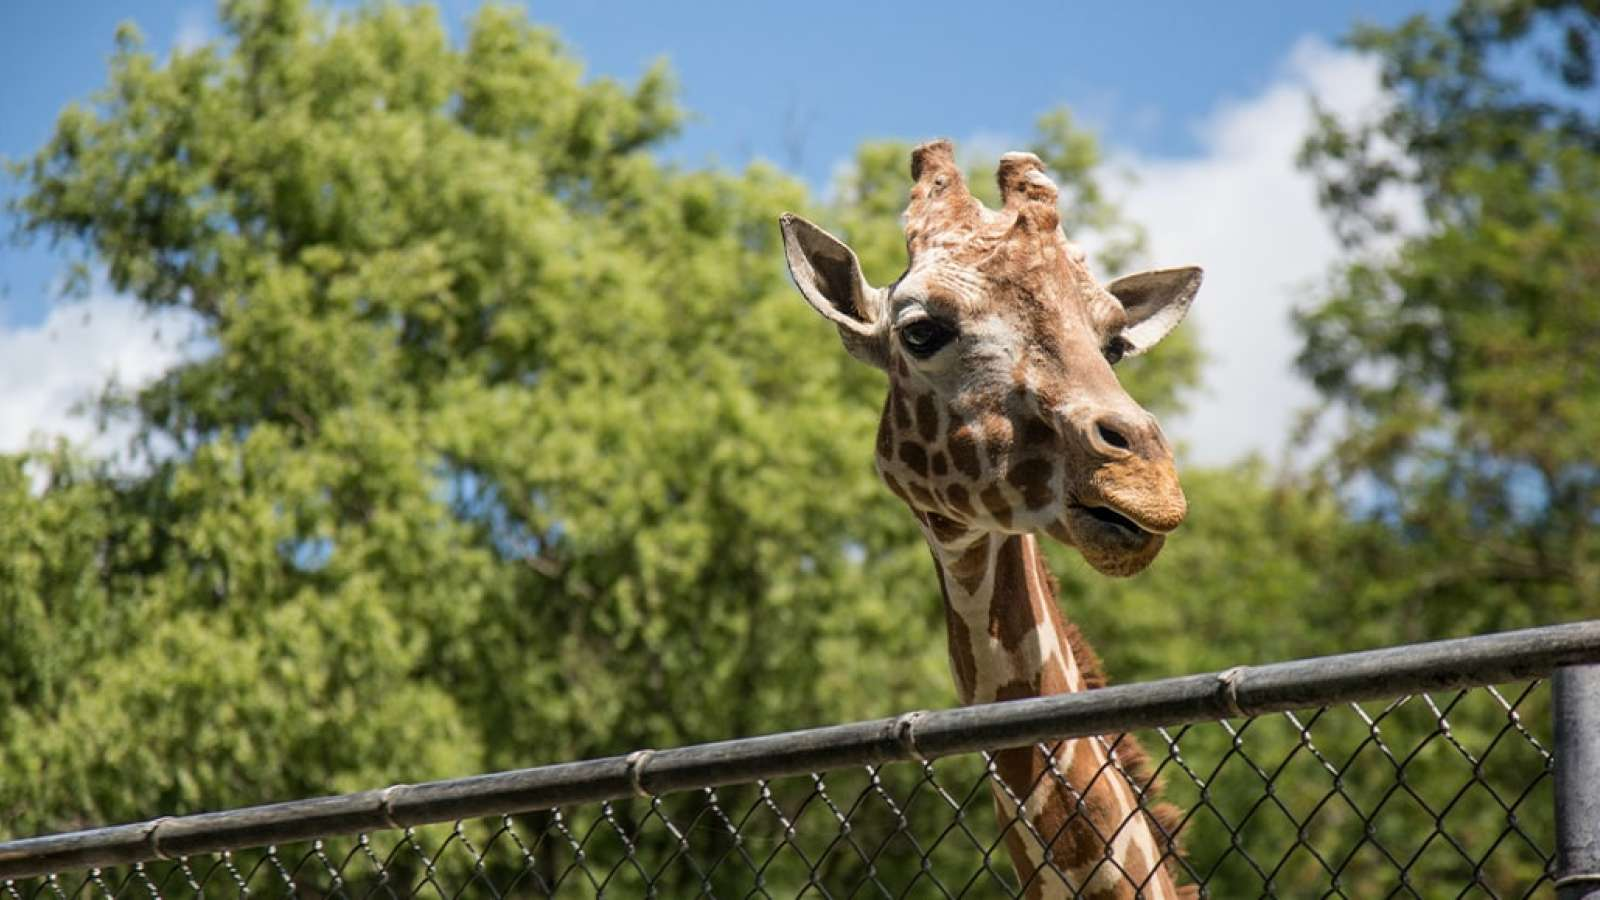 Giraffe looking over a fence